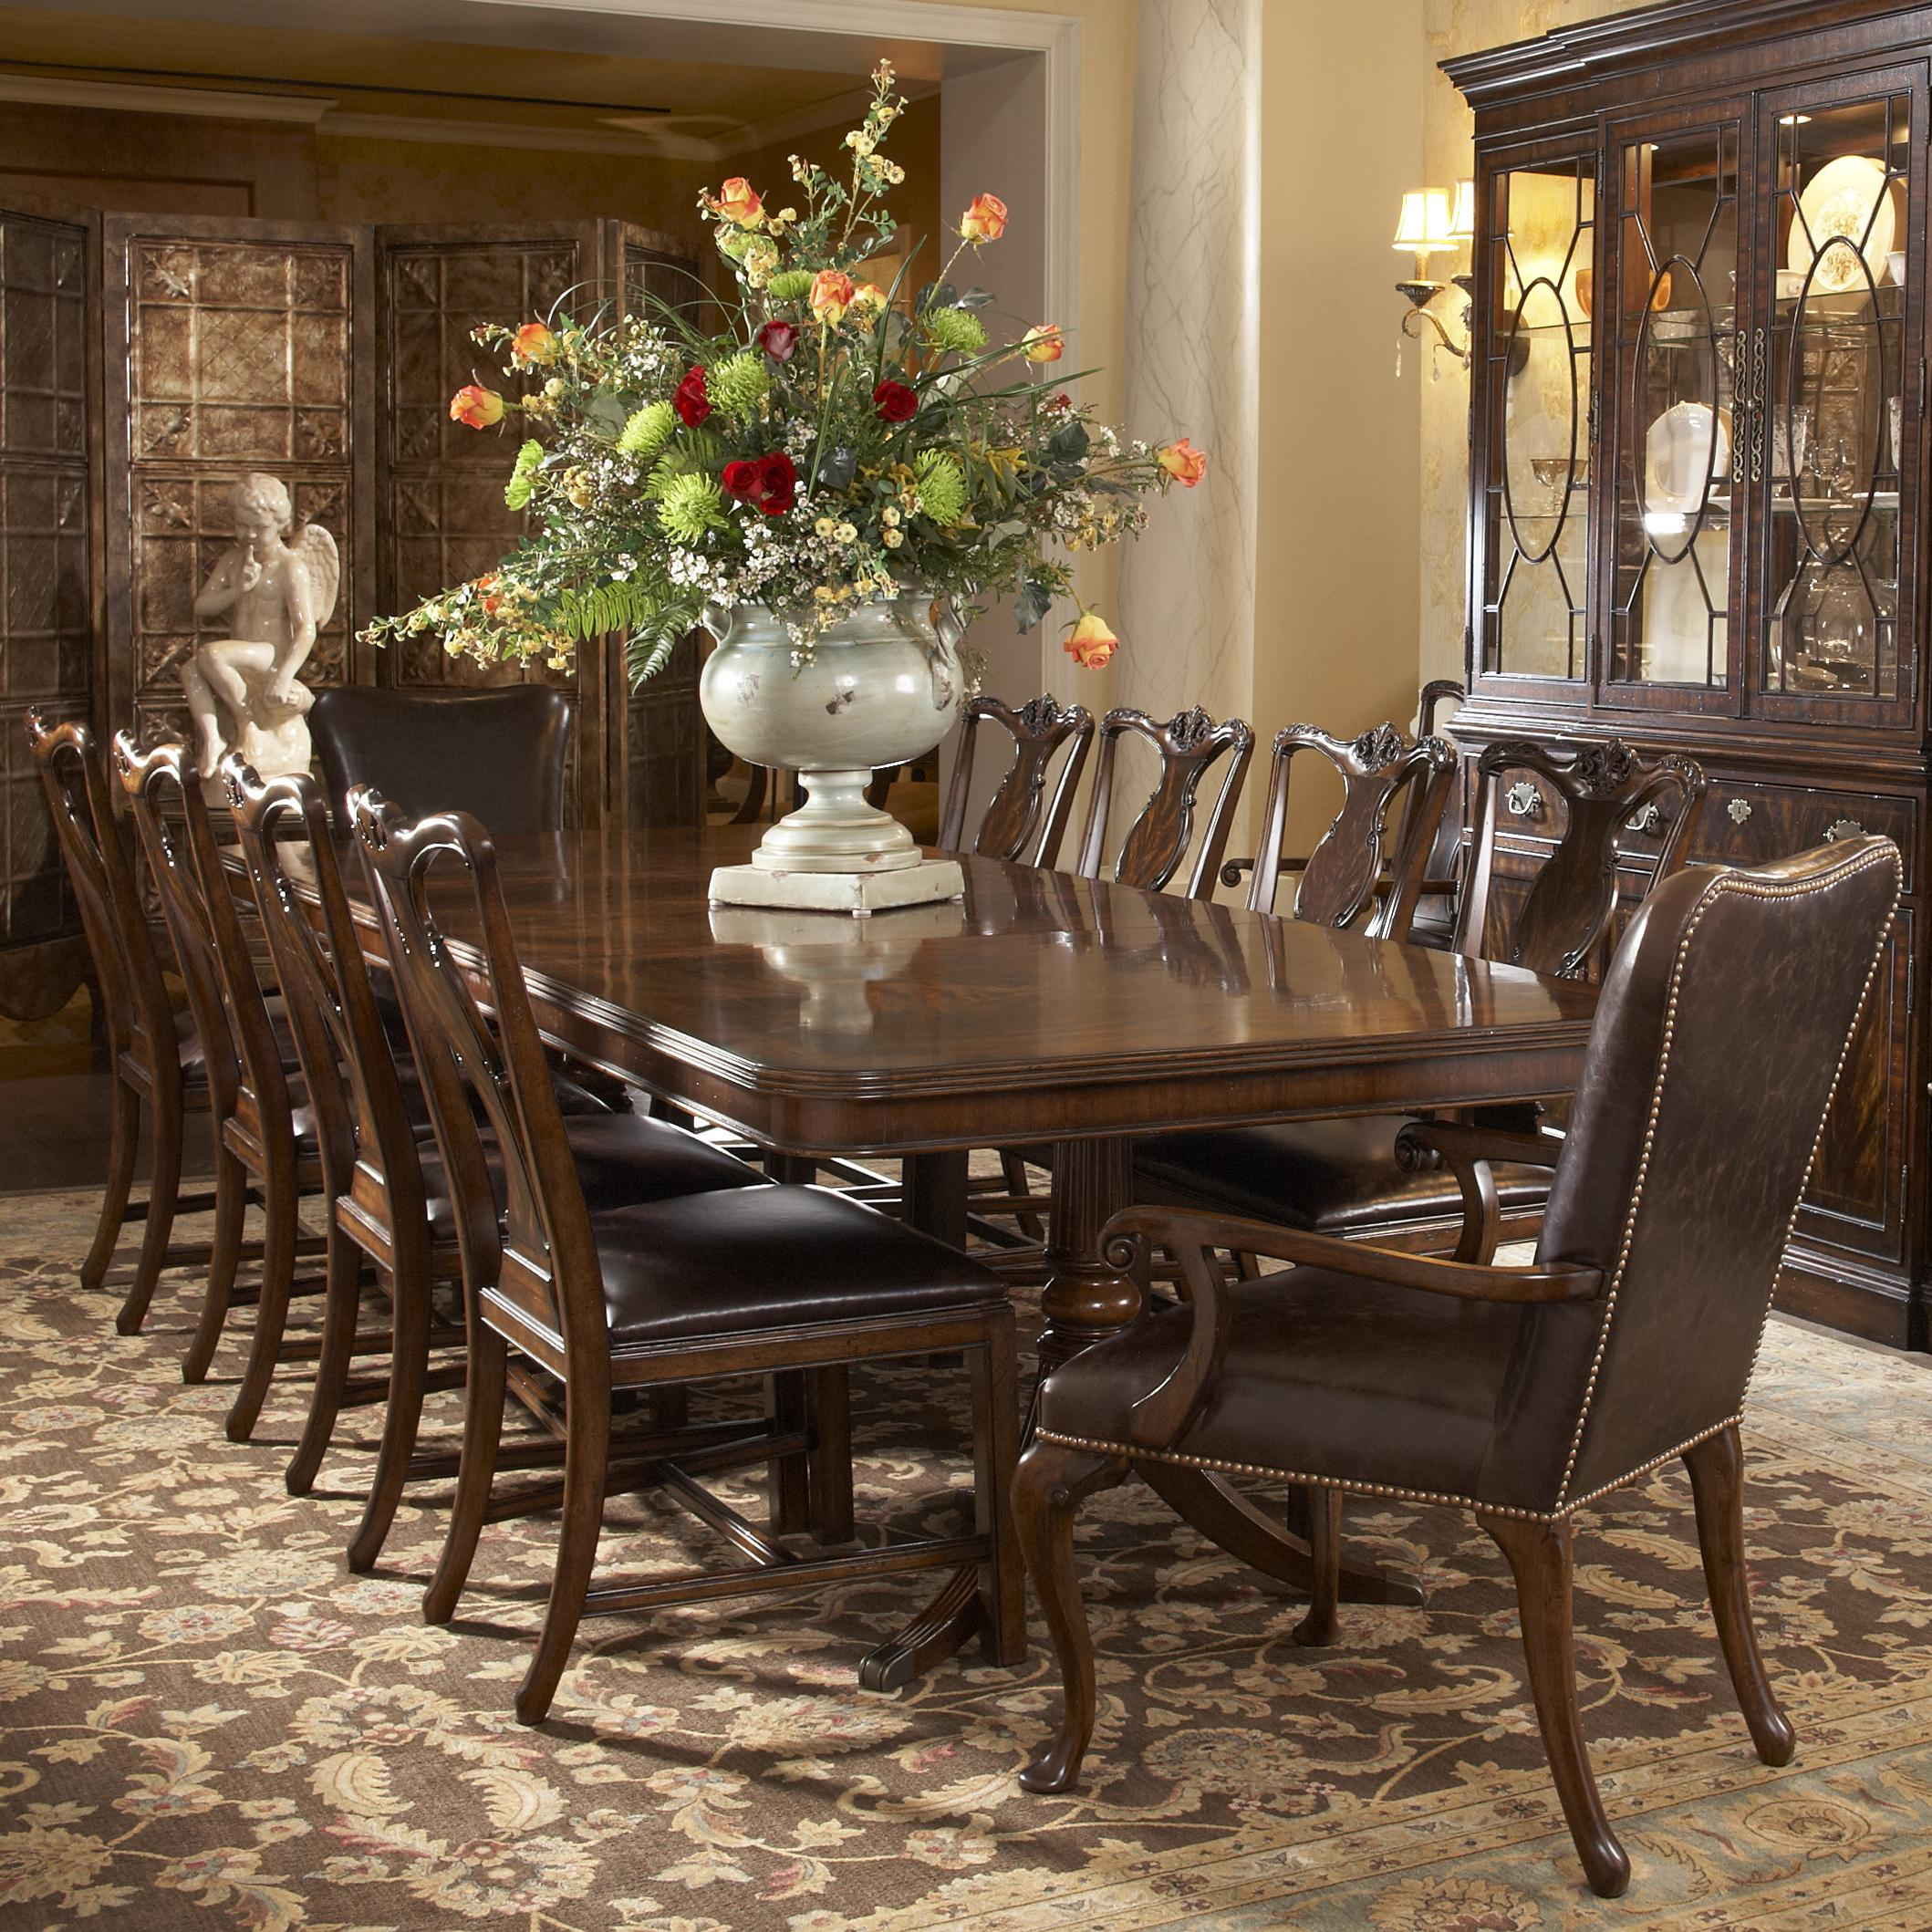 chairs for dining room table | 11 Piece Dining Room Set | HomesFeed